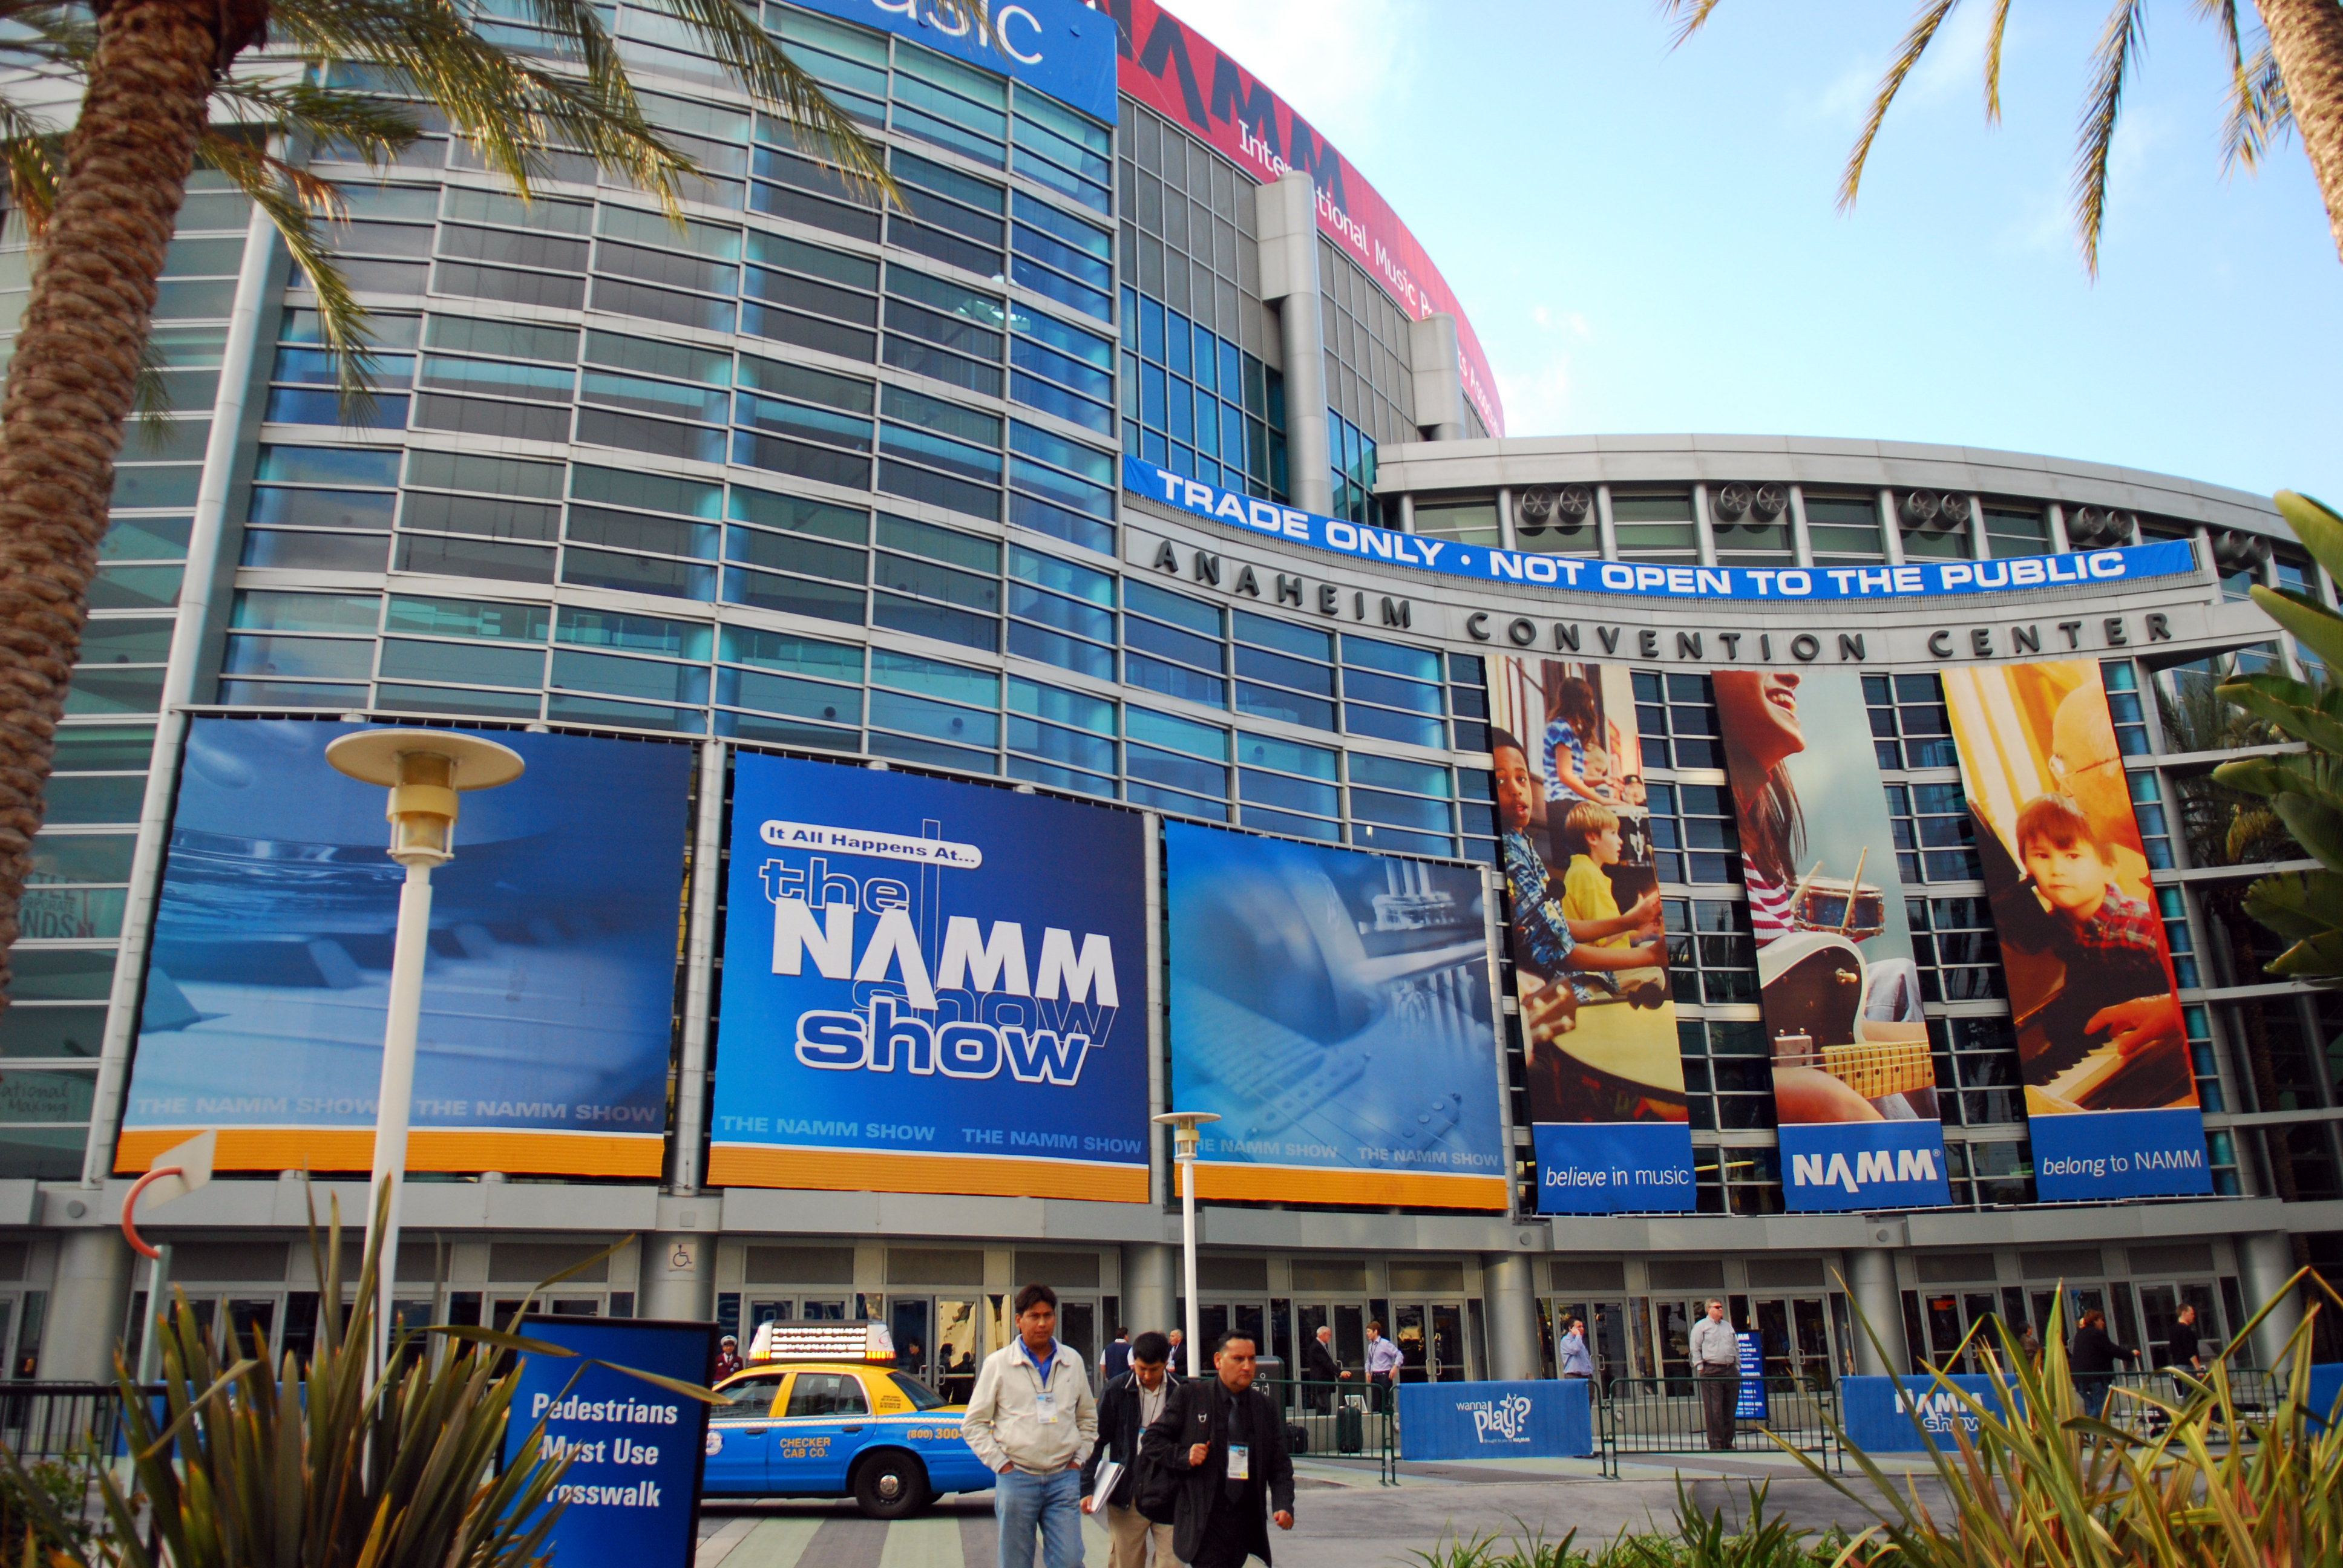 NAMM_Show_2010_at_Anaheim_Convention_Center